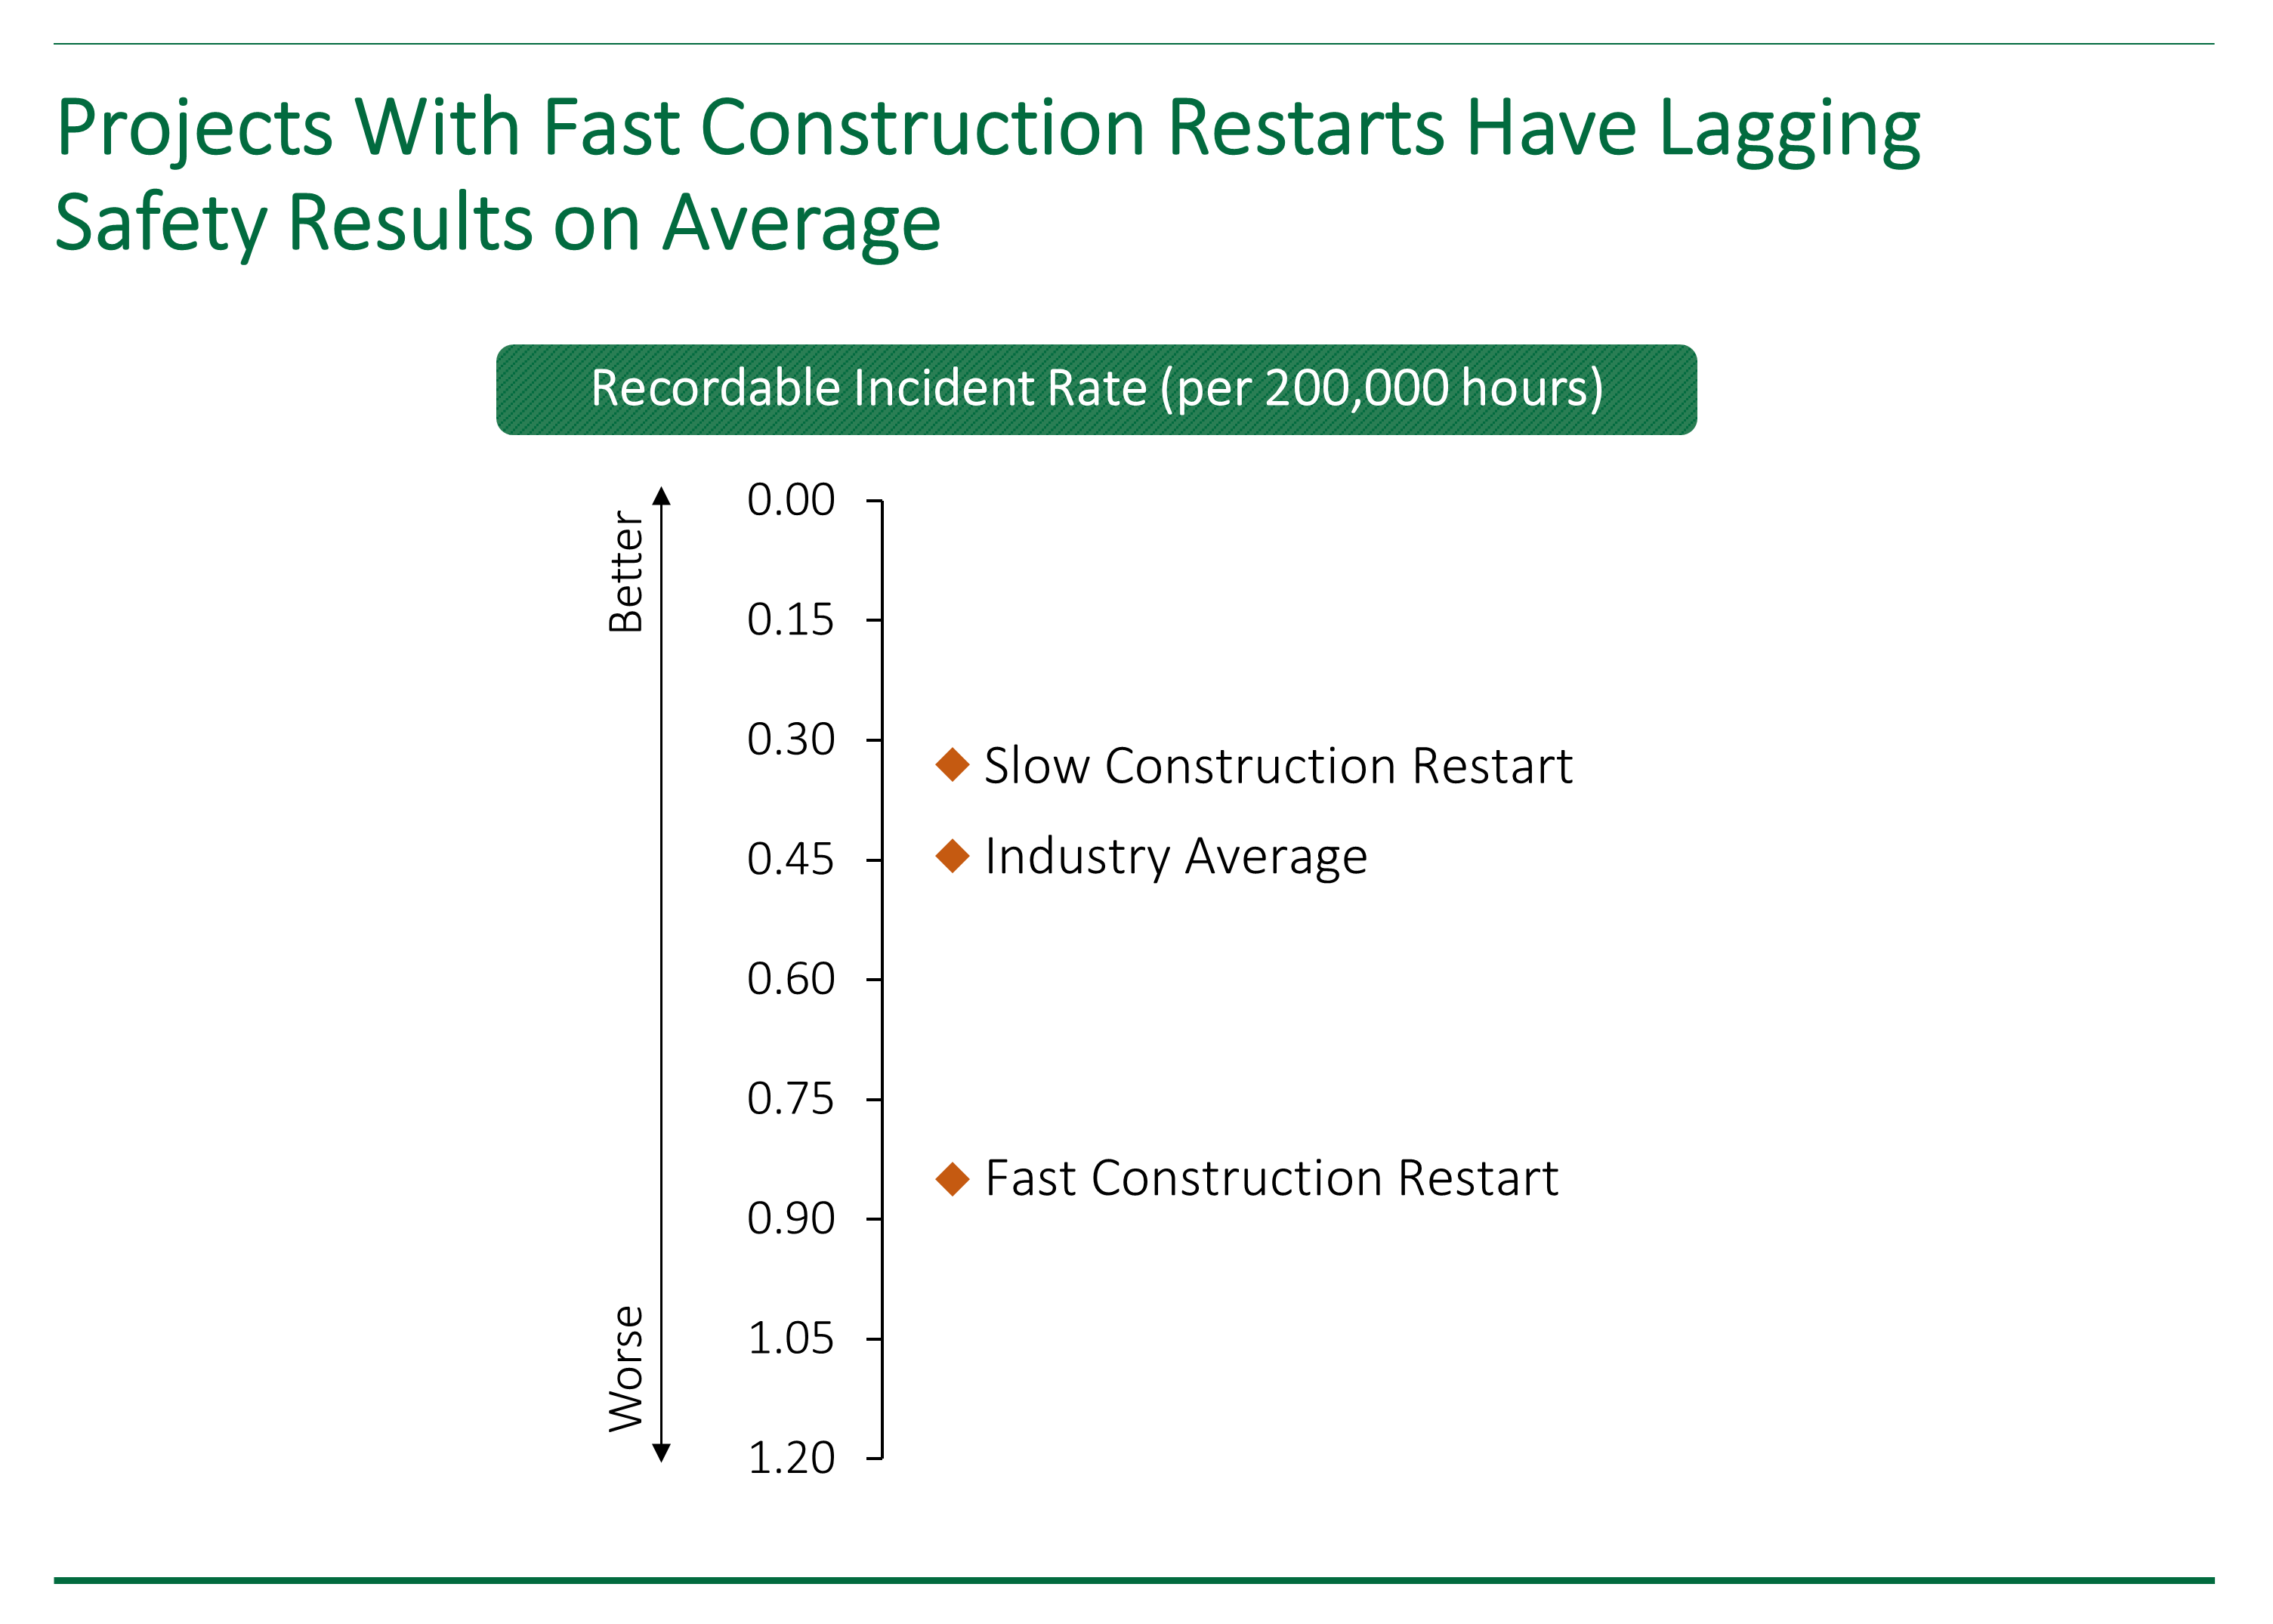 IPA data chart showing how capital projects with fast construction restarts tend to have worse safety performance.